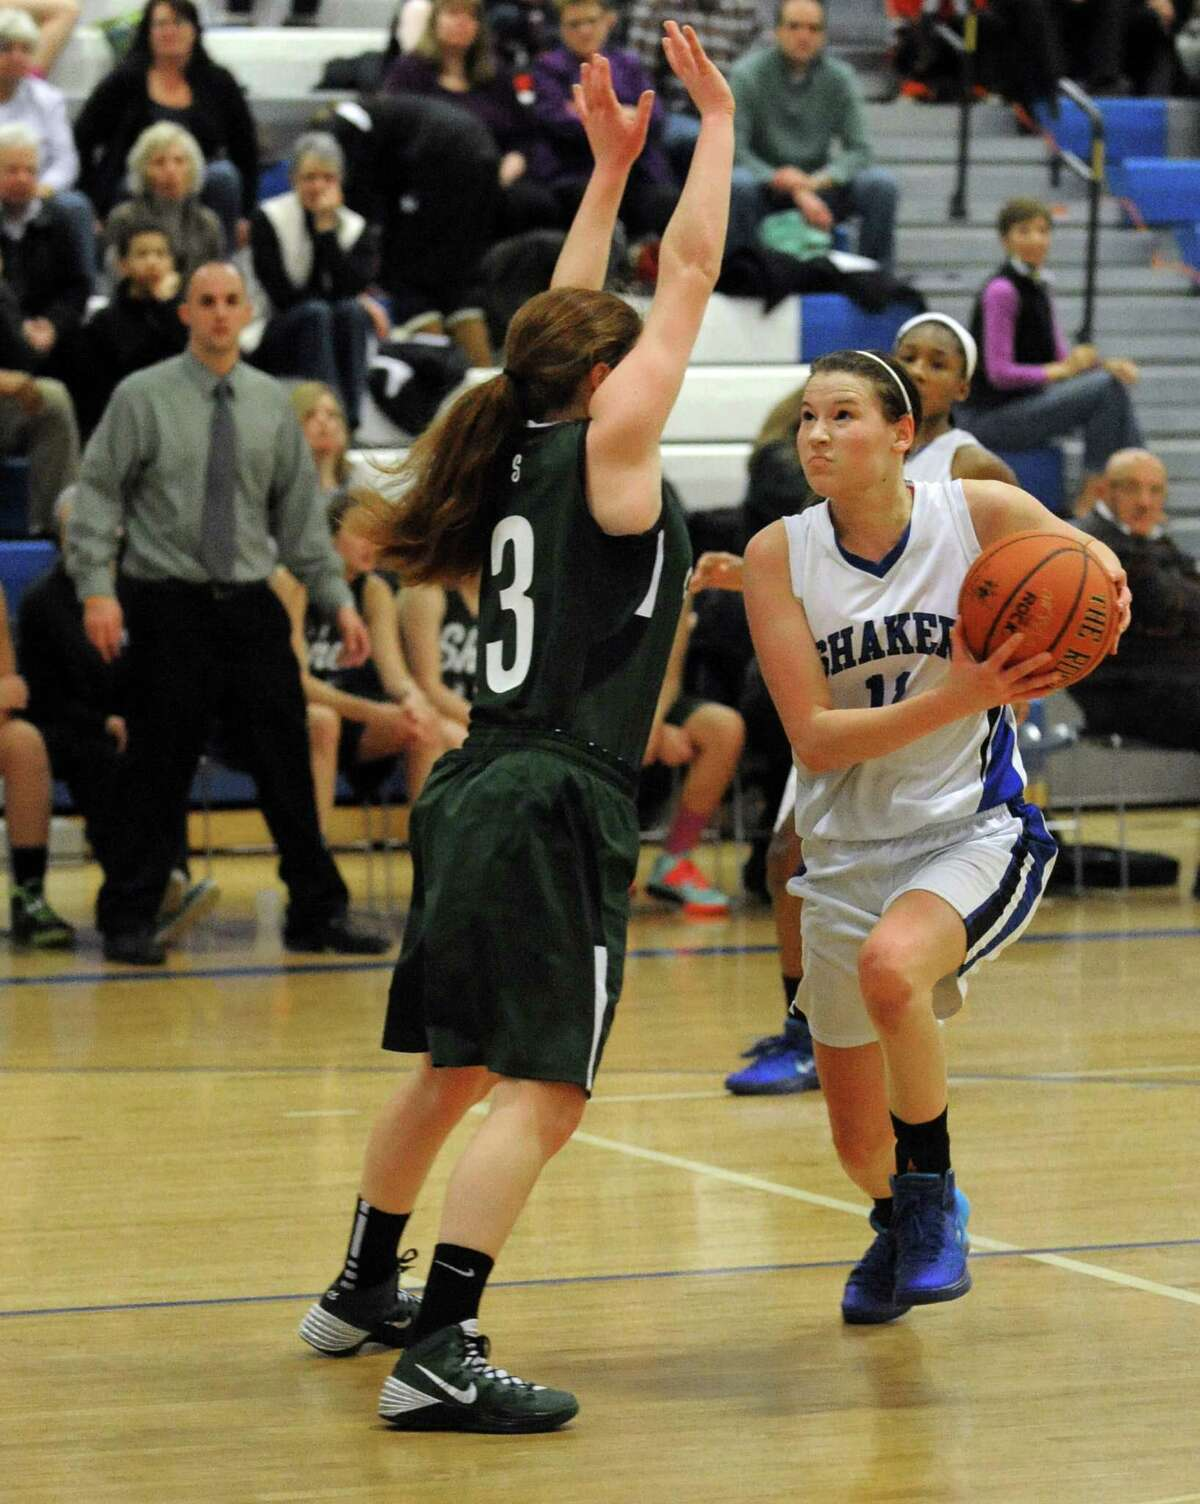 Shaker's Jenni Barra drives to the basket during their girl's high school basketball game against Shen on Tuesday Jan. 14, 2014 in Colonie, N.Y. (Michael P. Farrell/Times Union)